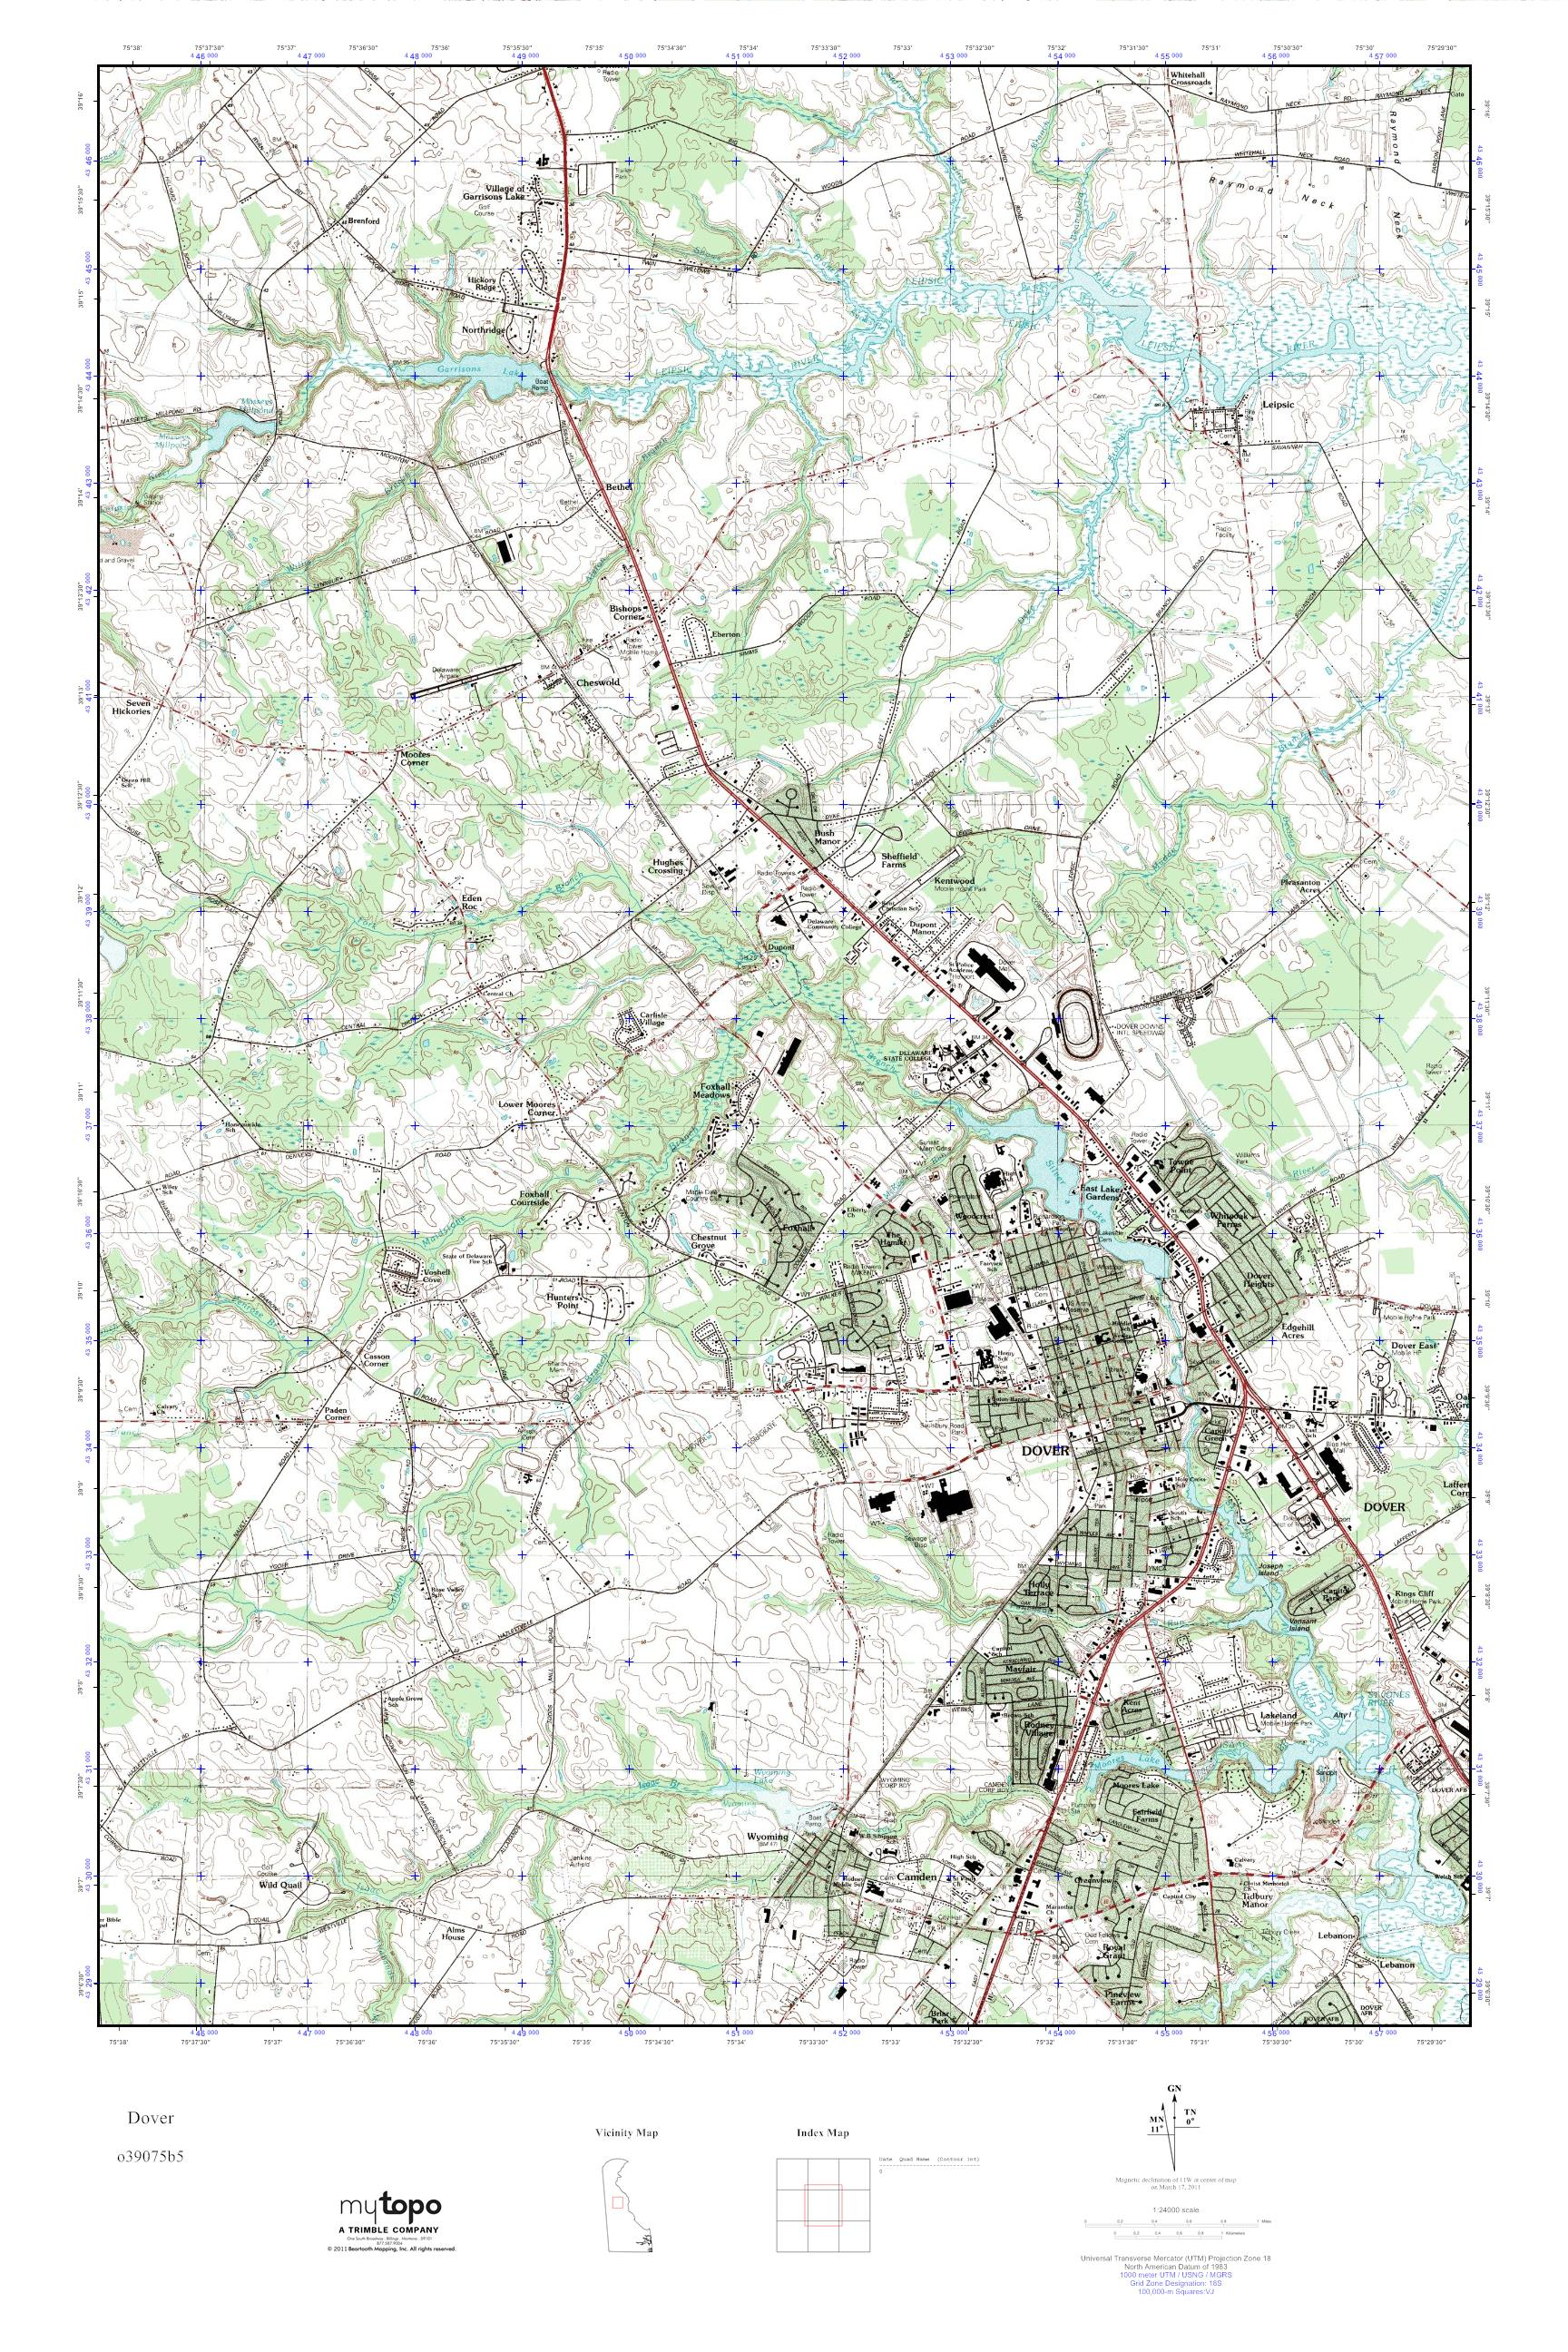 MyTopo Dover, Delaware USGS Quad Topo Map on